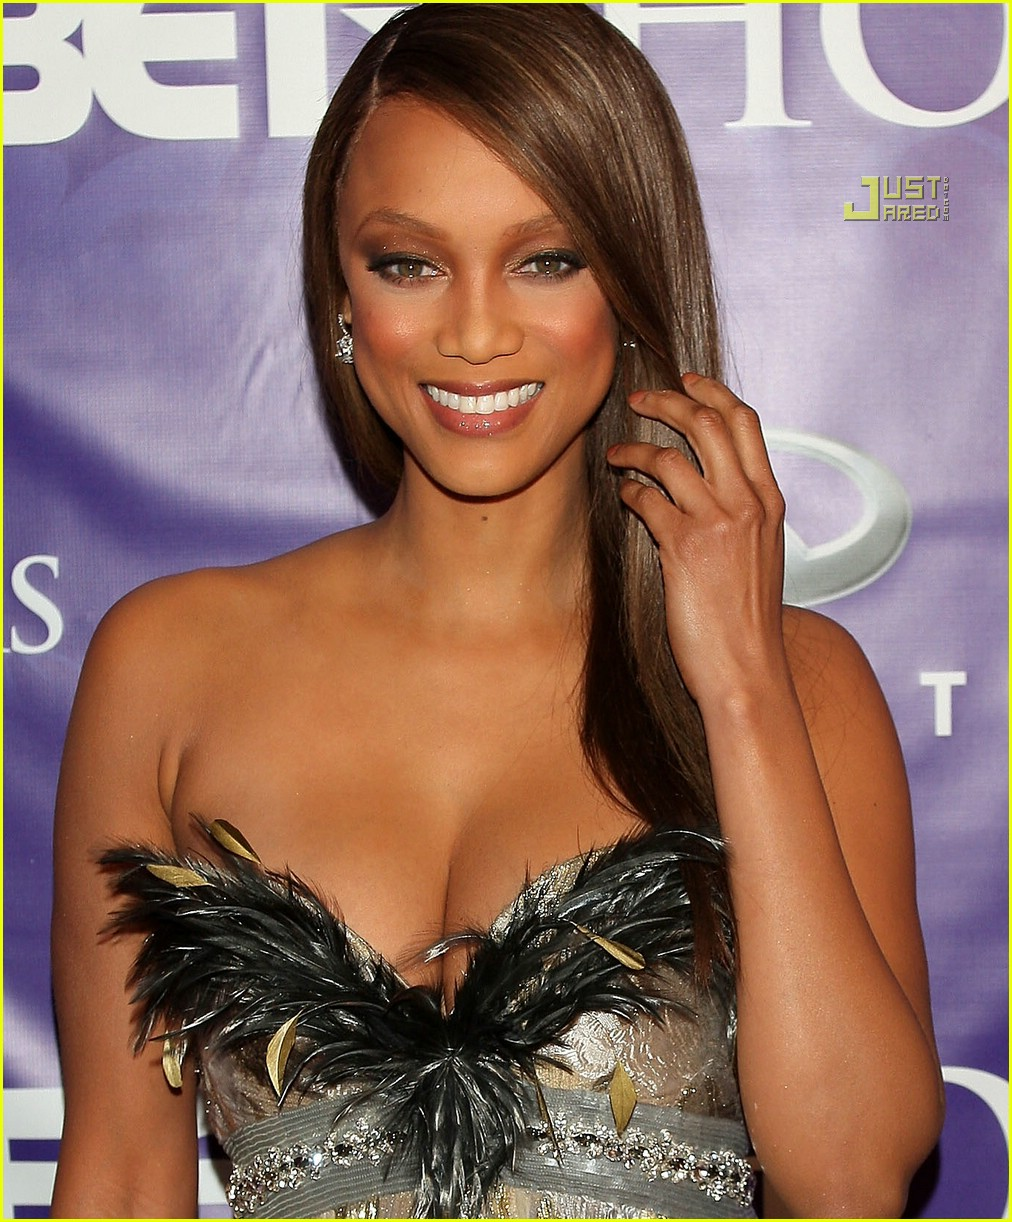 Tyra Banks Awards: Tyra Banks @ BET Honors 2008: Photo 848031